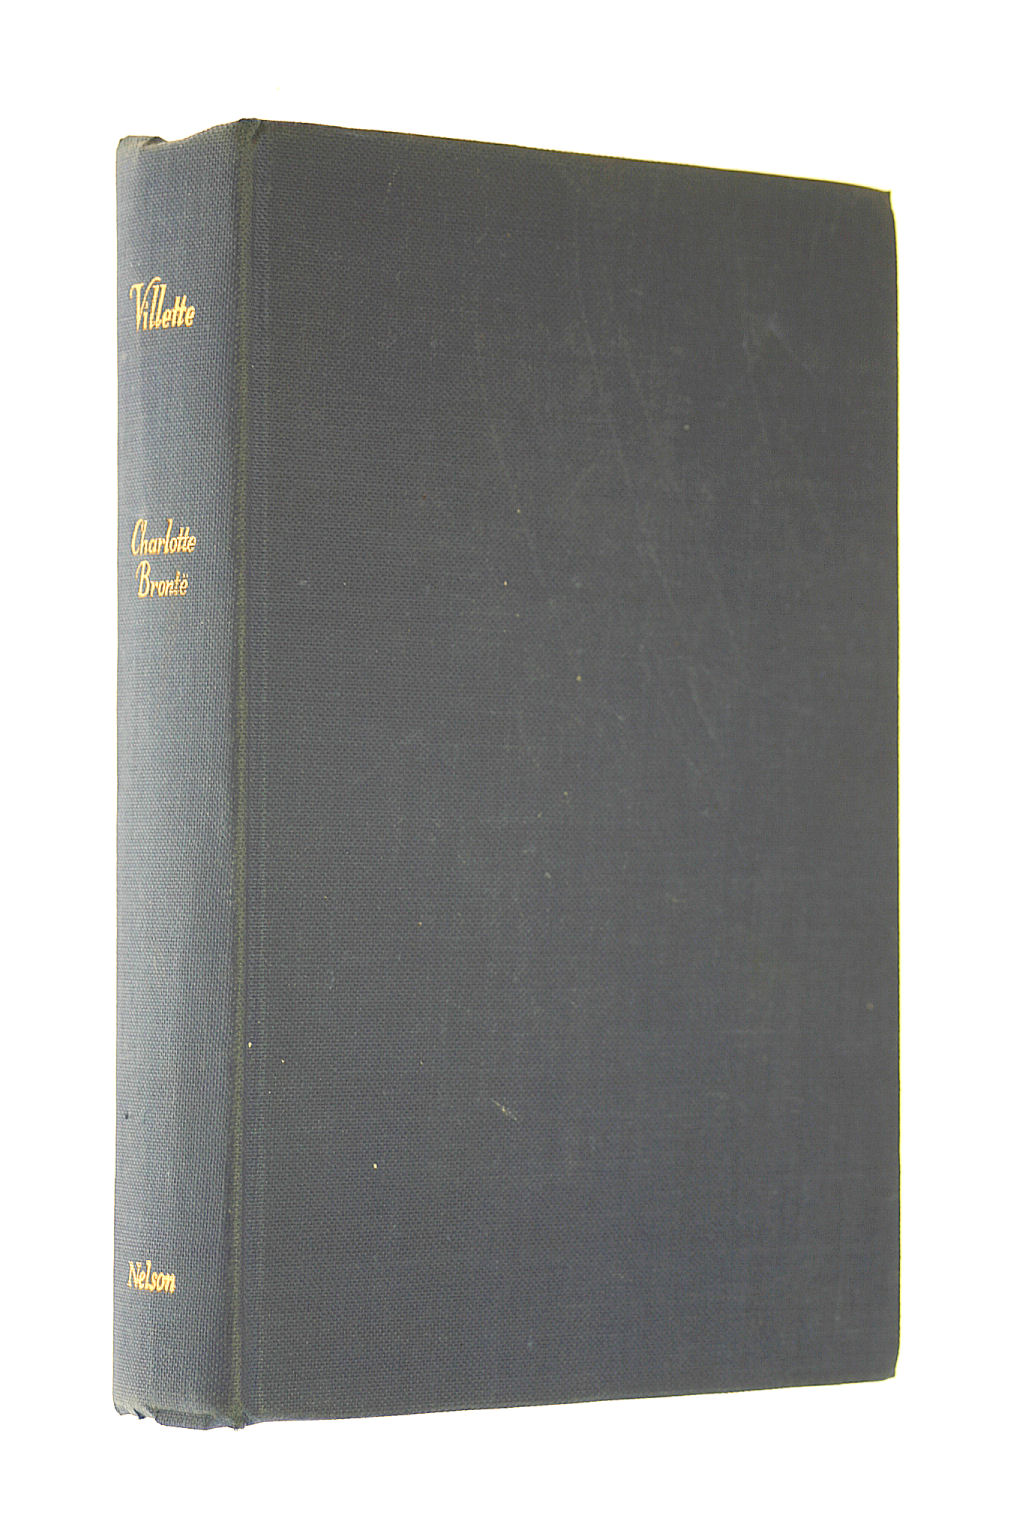 Image for Villette by Charlotte Bronte, Thomas Nelson And Sons Ltd